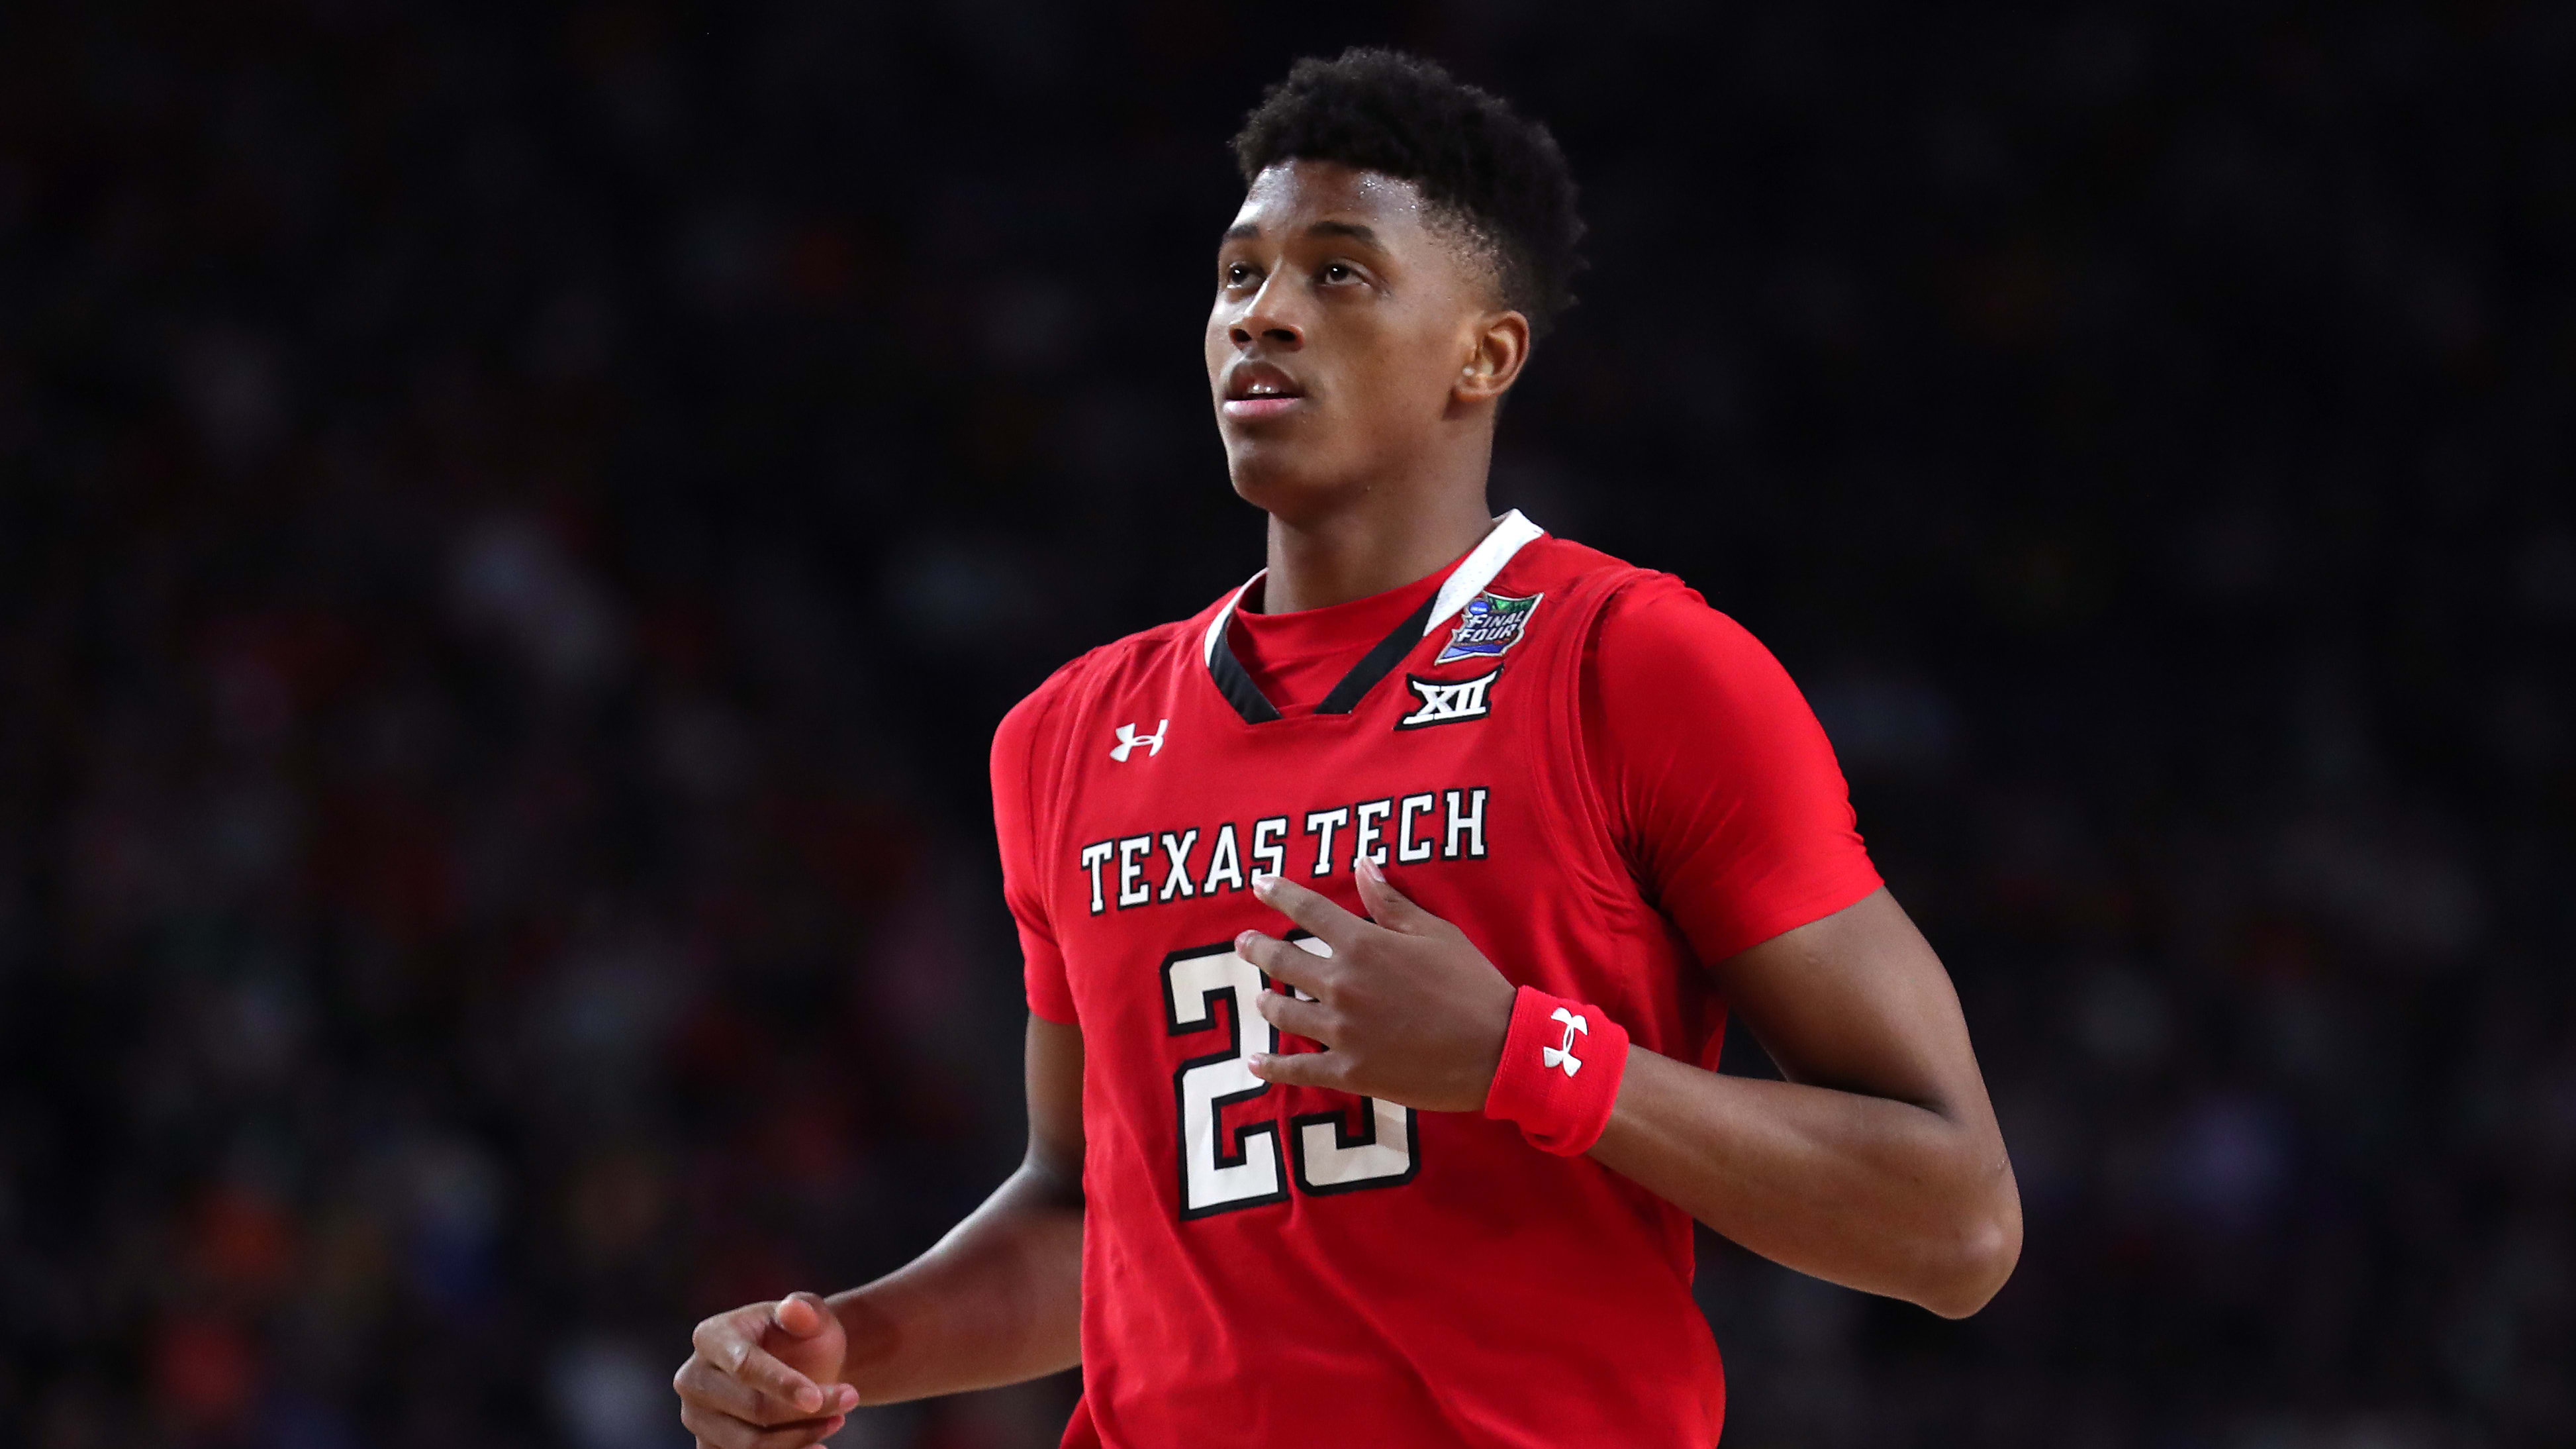 MINNEAPOLIS, MINNESOTA - APRIL 06: Jarrett Culver #23 of the Texas Tech Red Raiders reacts in the second half against the Michigan State Spartans during the 2019 NCAA Final Four semifinal at U.S. Bank Stadium on April 6, 2019 in Minneapolis, Minnesota. (Photo by Tom Pennington/Getty Images)